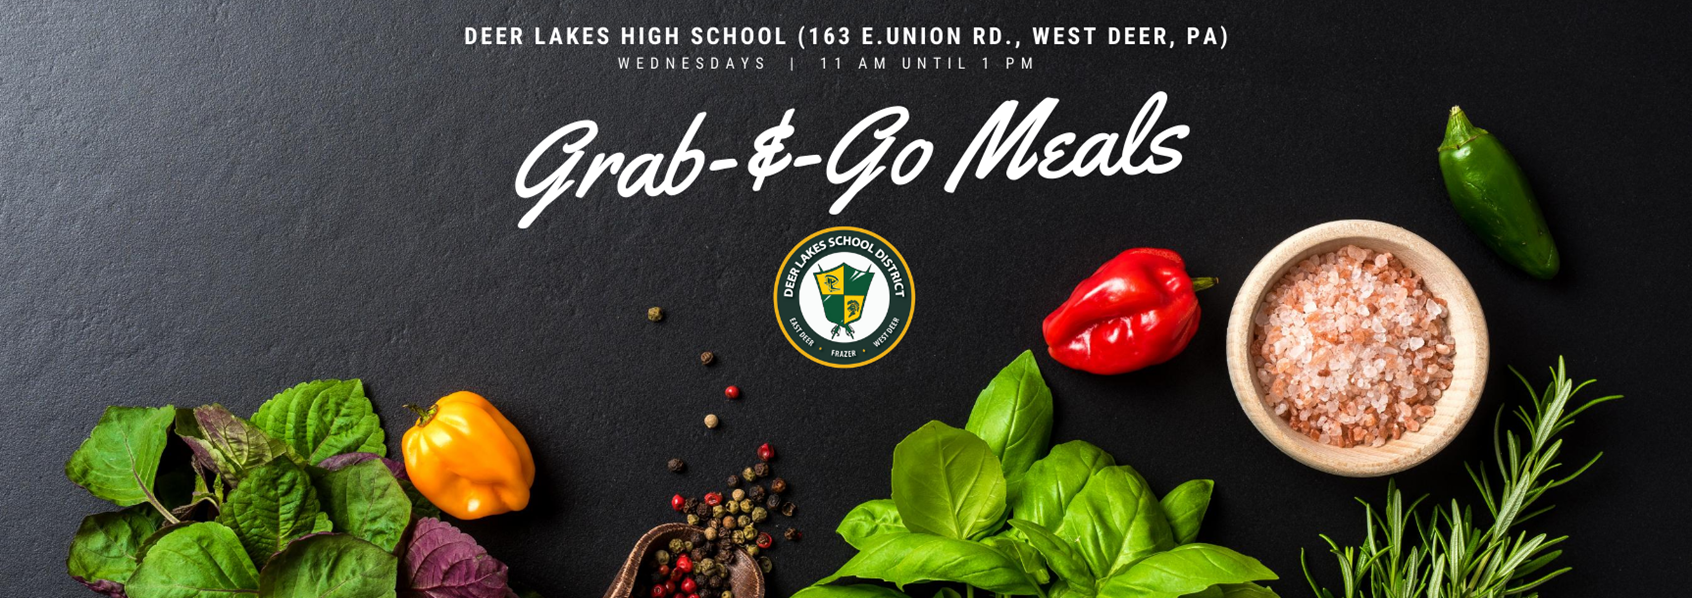 Grab-&-Go Meals: Wednesdays from 11 a.m. to 1 p.m.